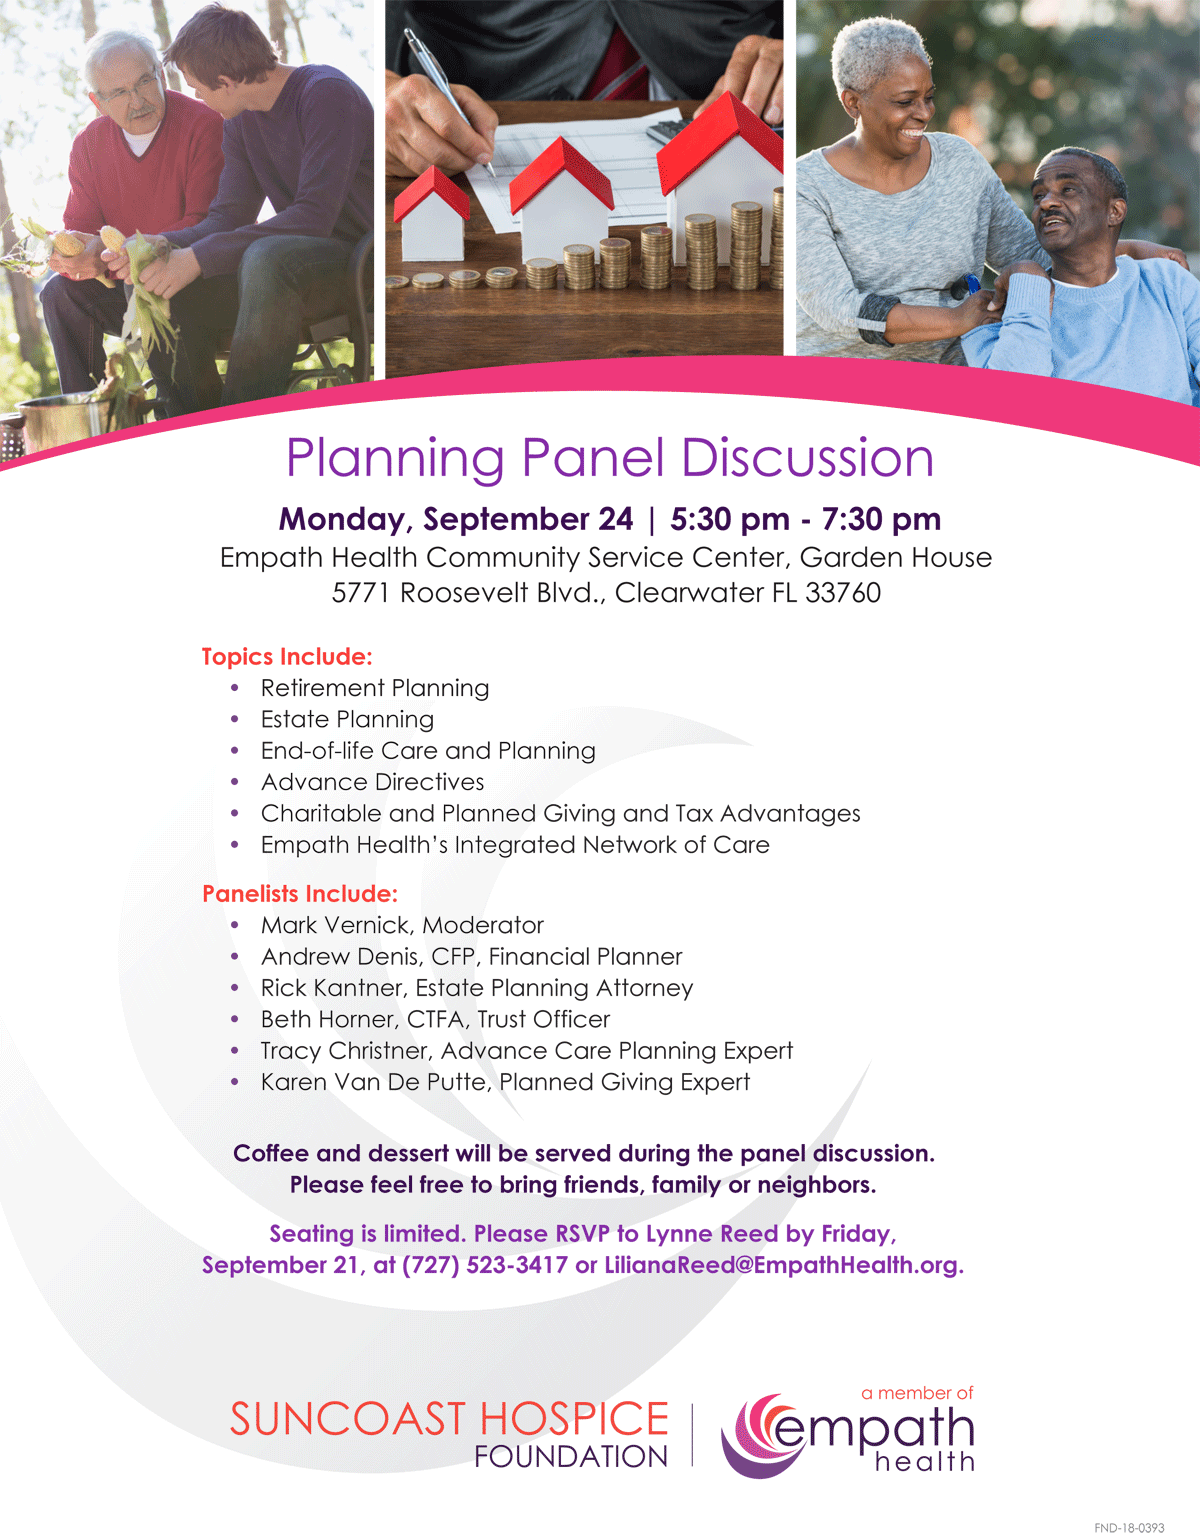 Expert Planning Panel Discussion @ Suncoast Hospice | Empath Health - Garden House | Clearwater | Florida | United States